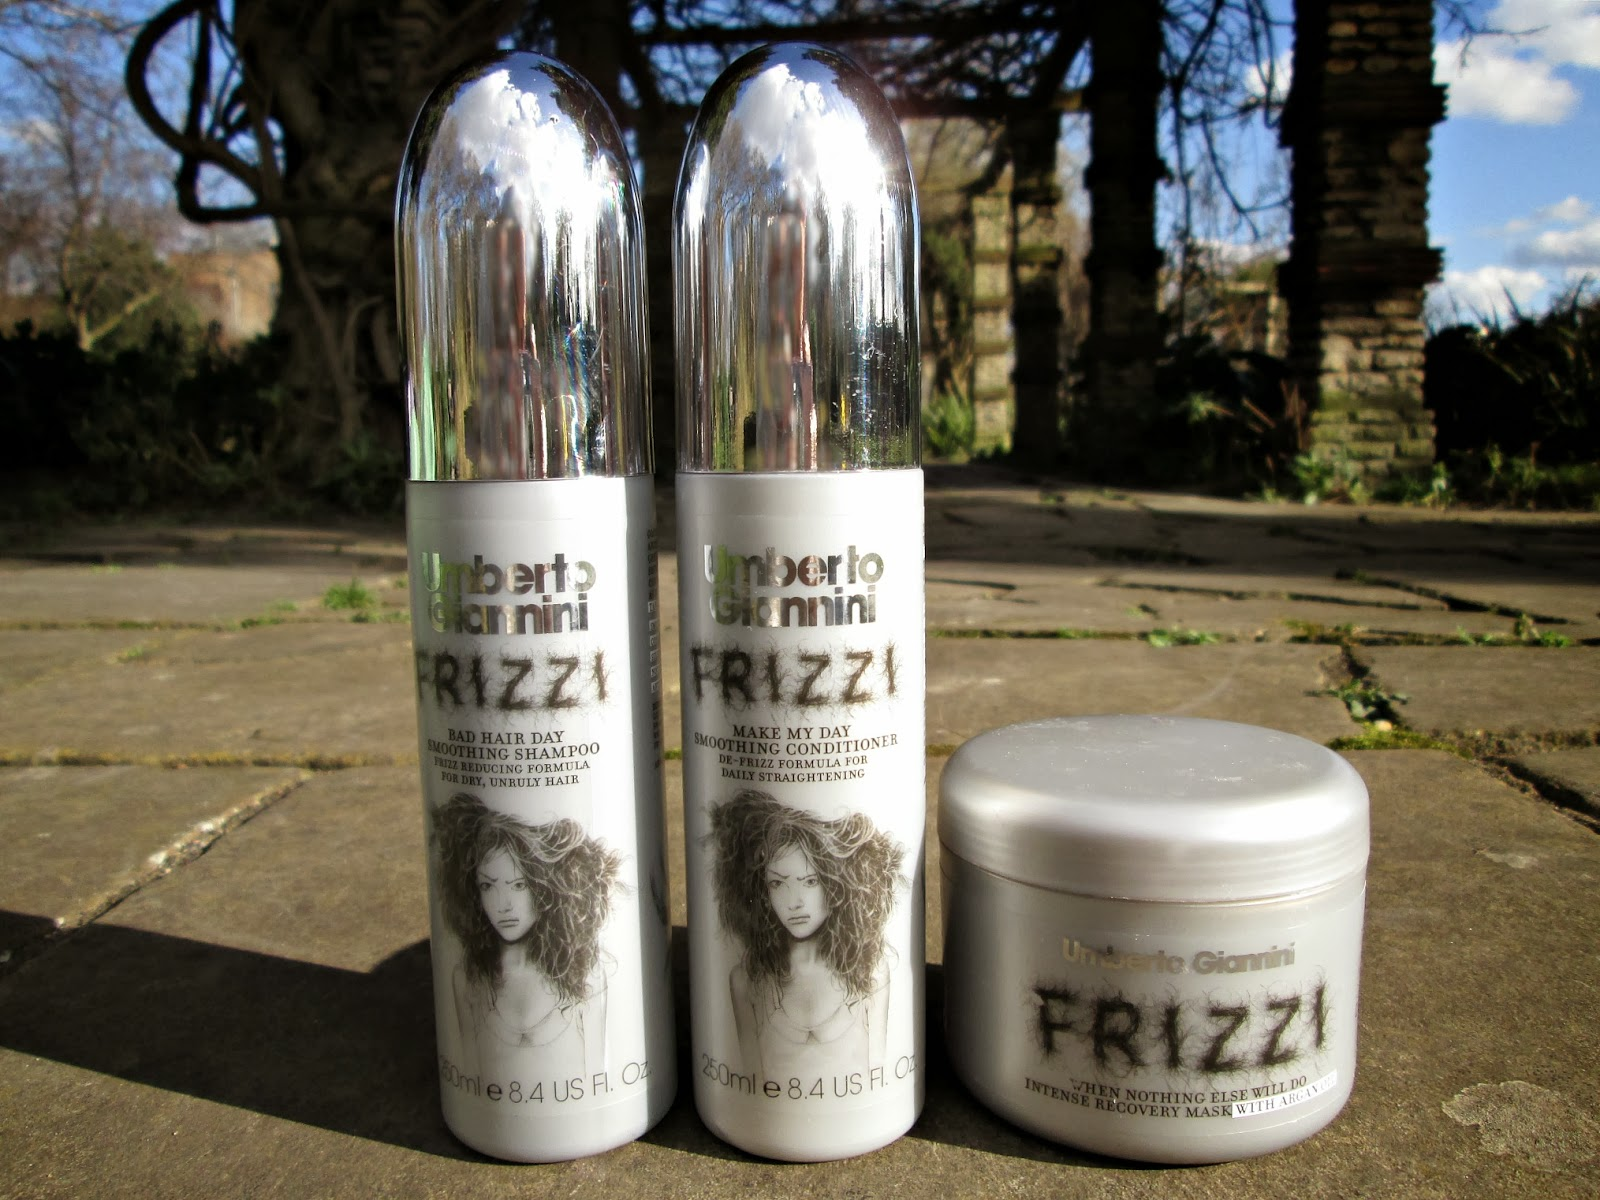 Umberto-Giannini-Frizzi-Haircare-Range-Review